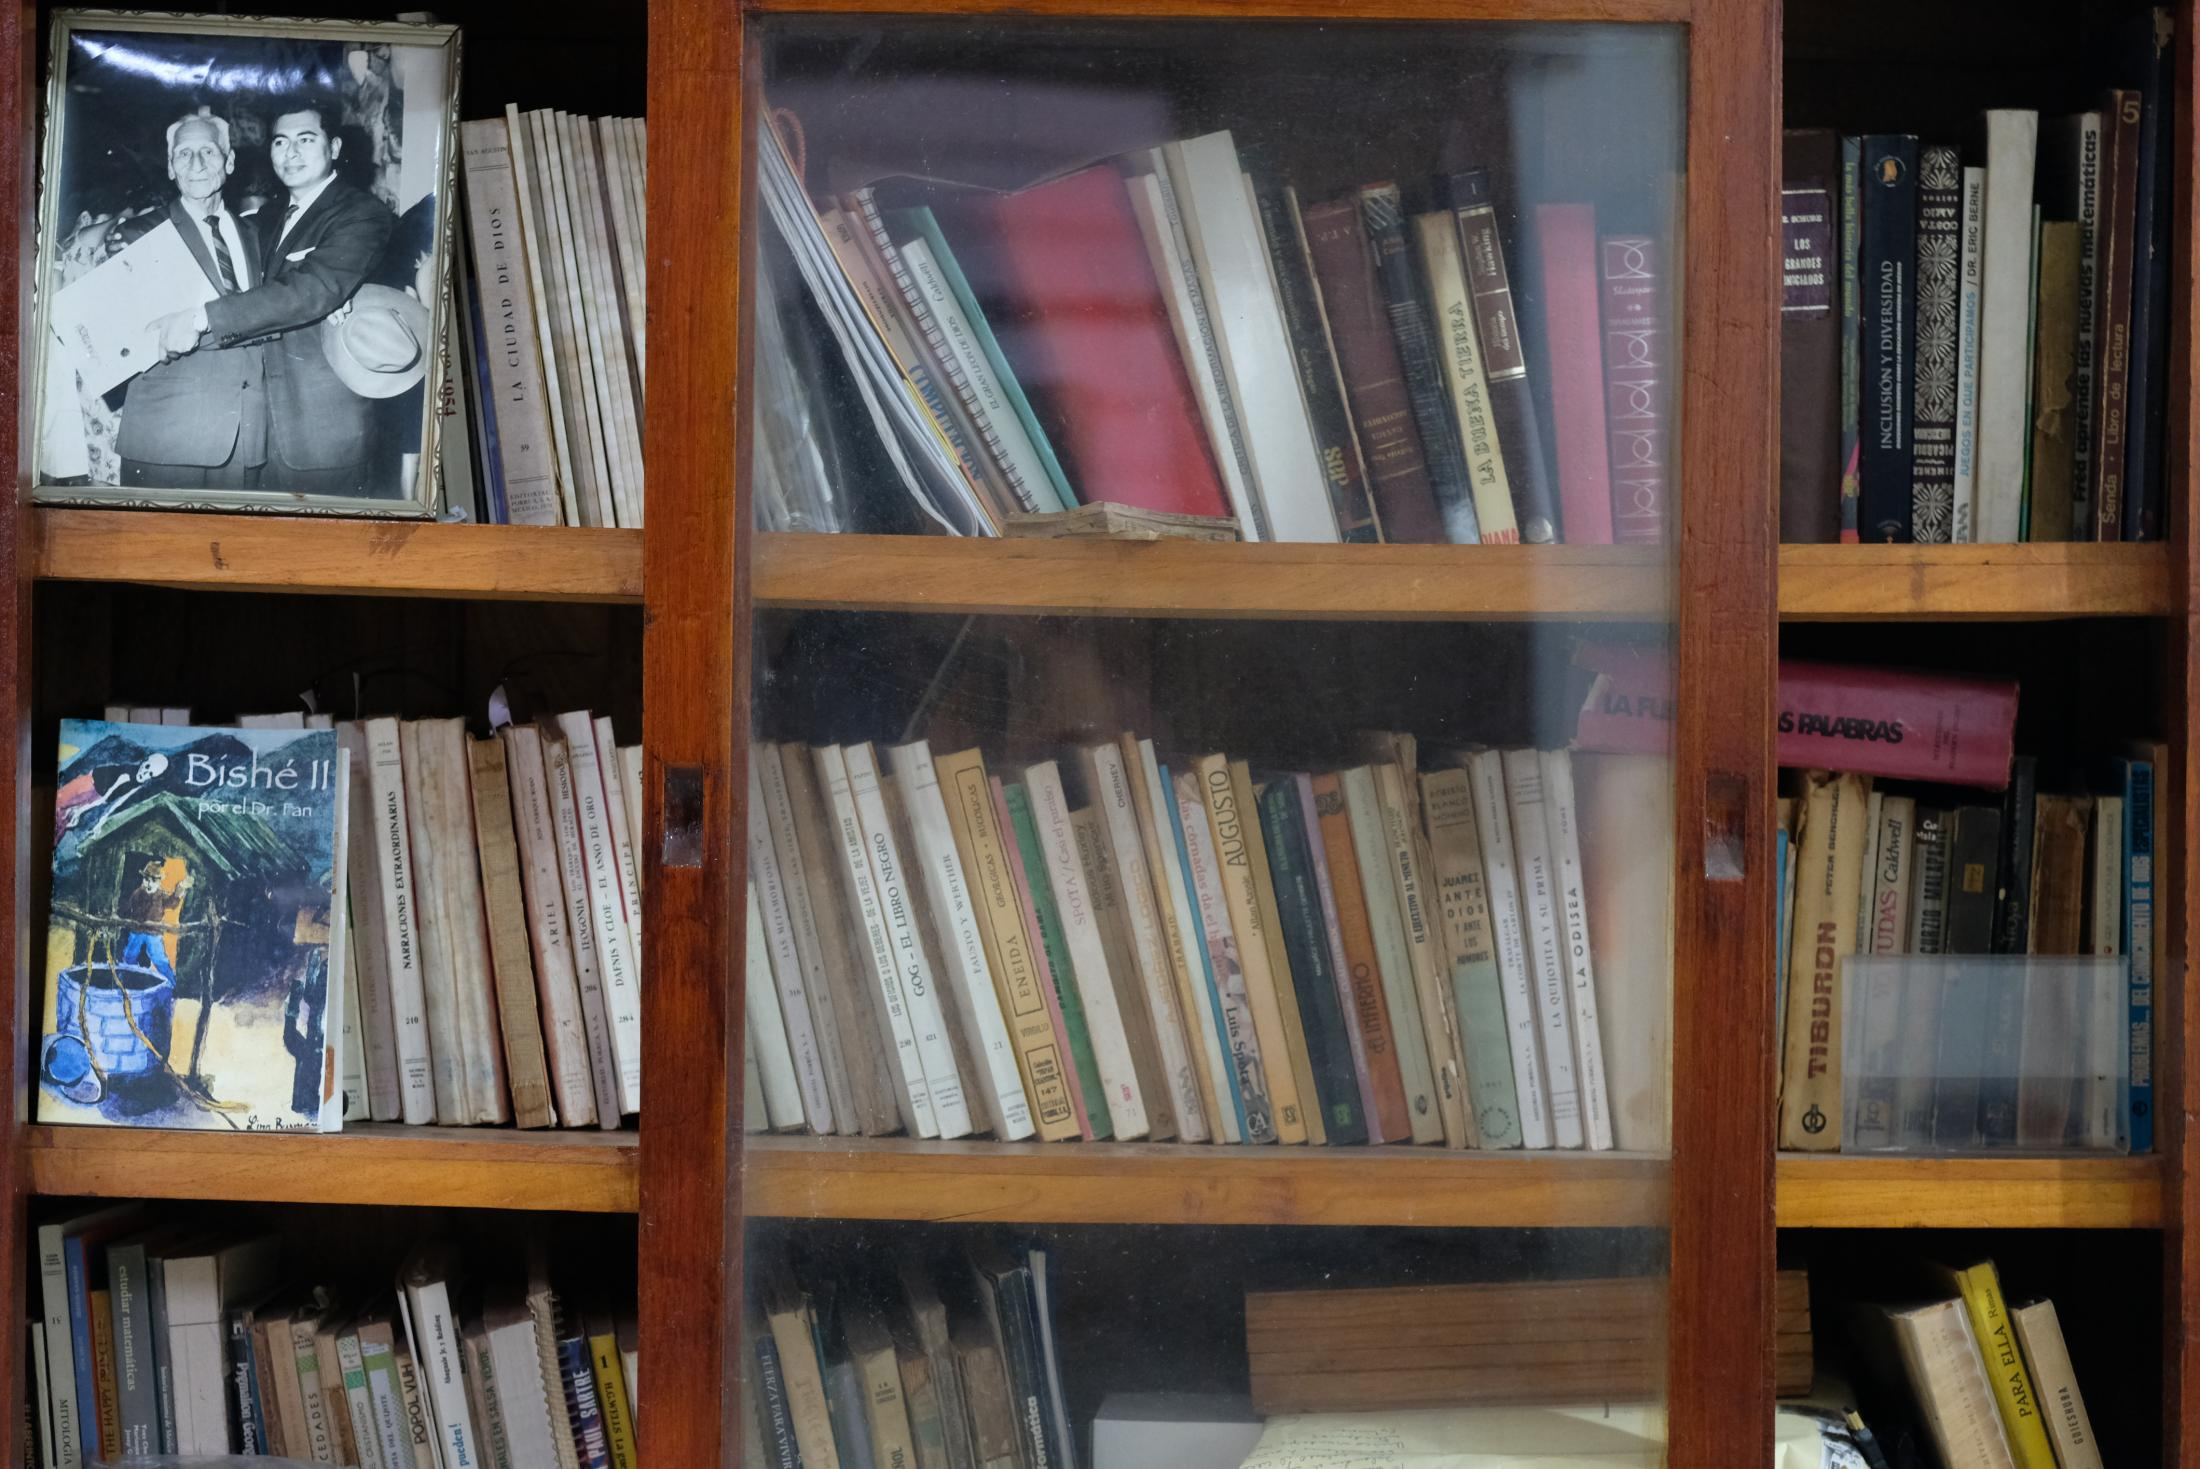 My grandfather, Juan Martinez Lopez, never learned Zapotec, Juchitan´s native language, until he was older and did a postgraduate degree in Medicine in Mexico City. After that, he wrote poetry in Zapotec as a protest to conserve his language. His small library remains untouched in his home in Juchitan since his death in 2008.